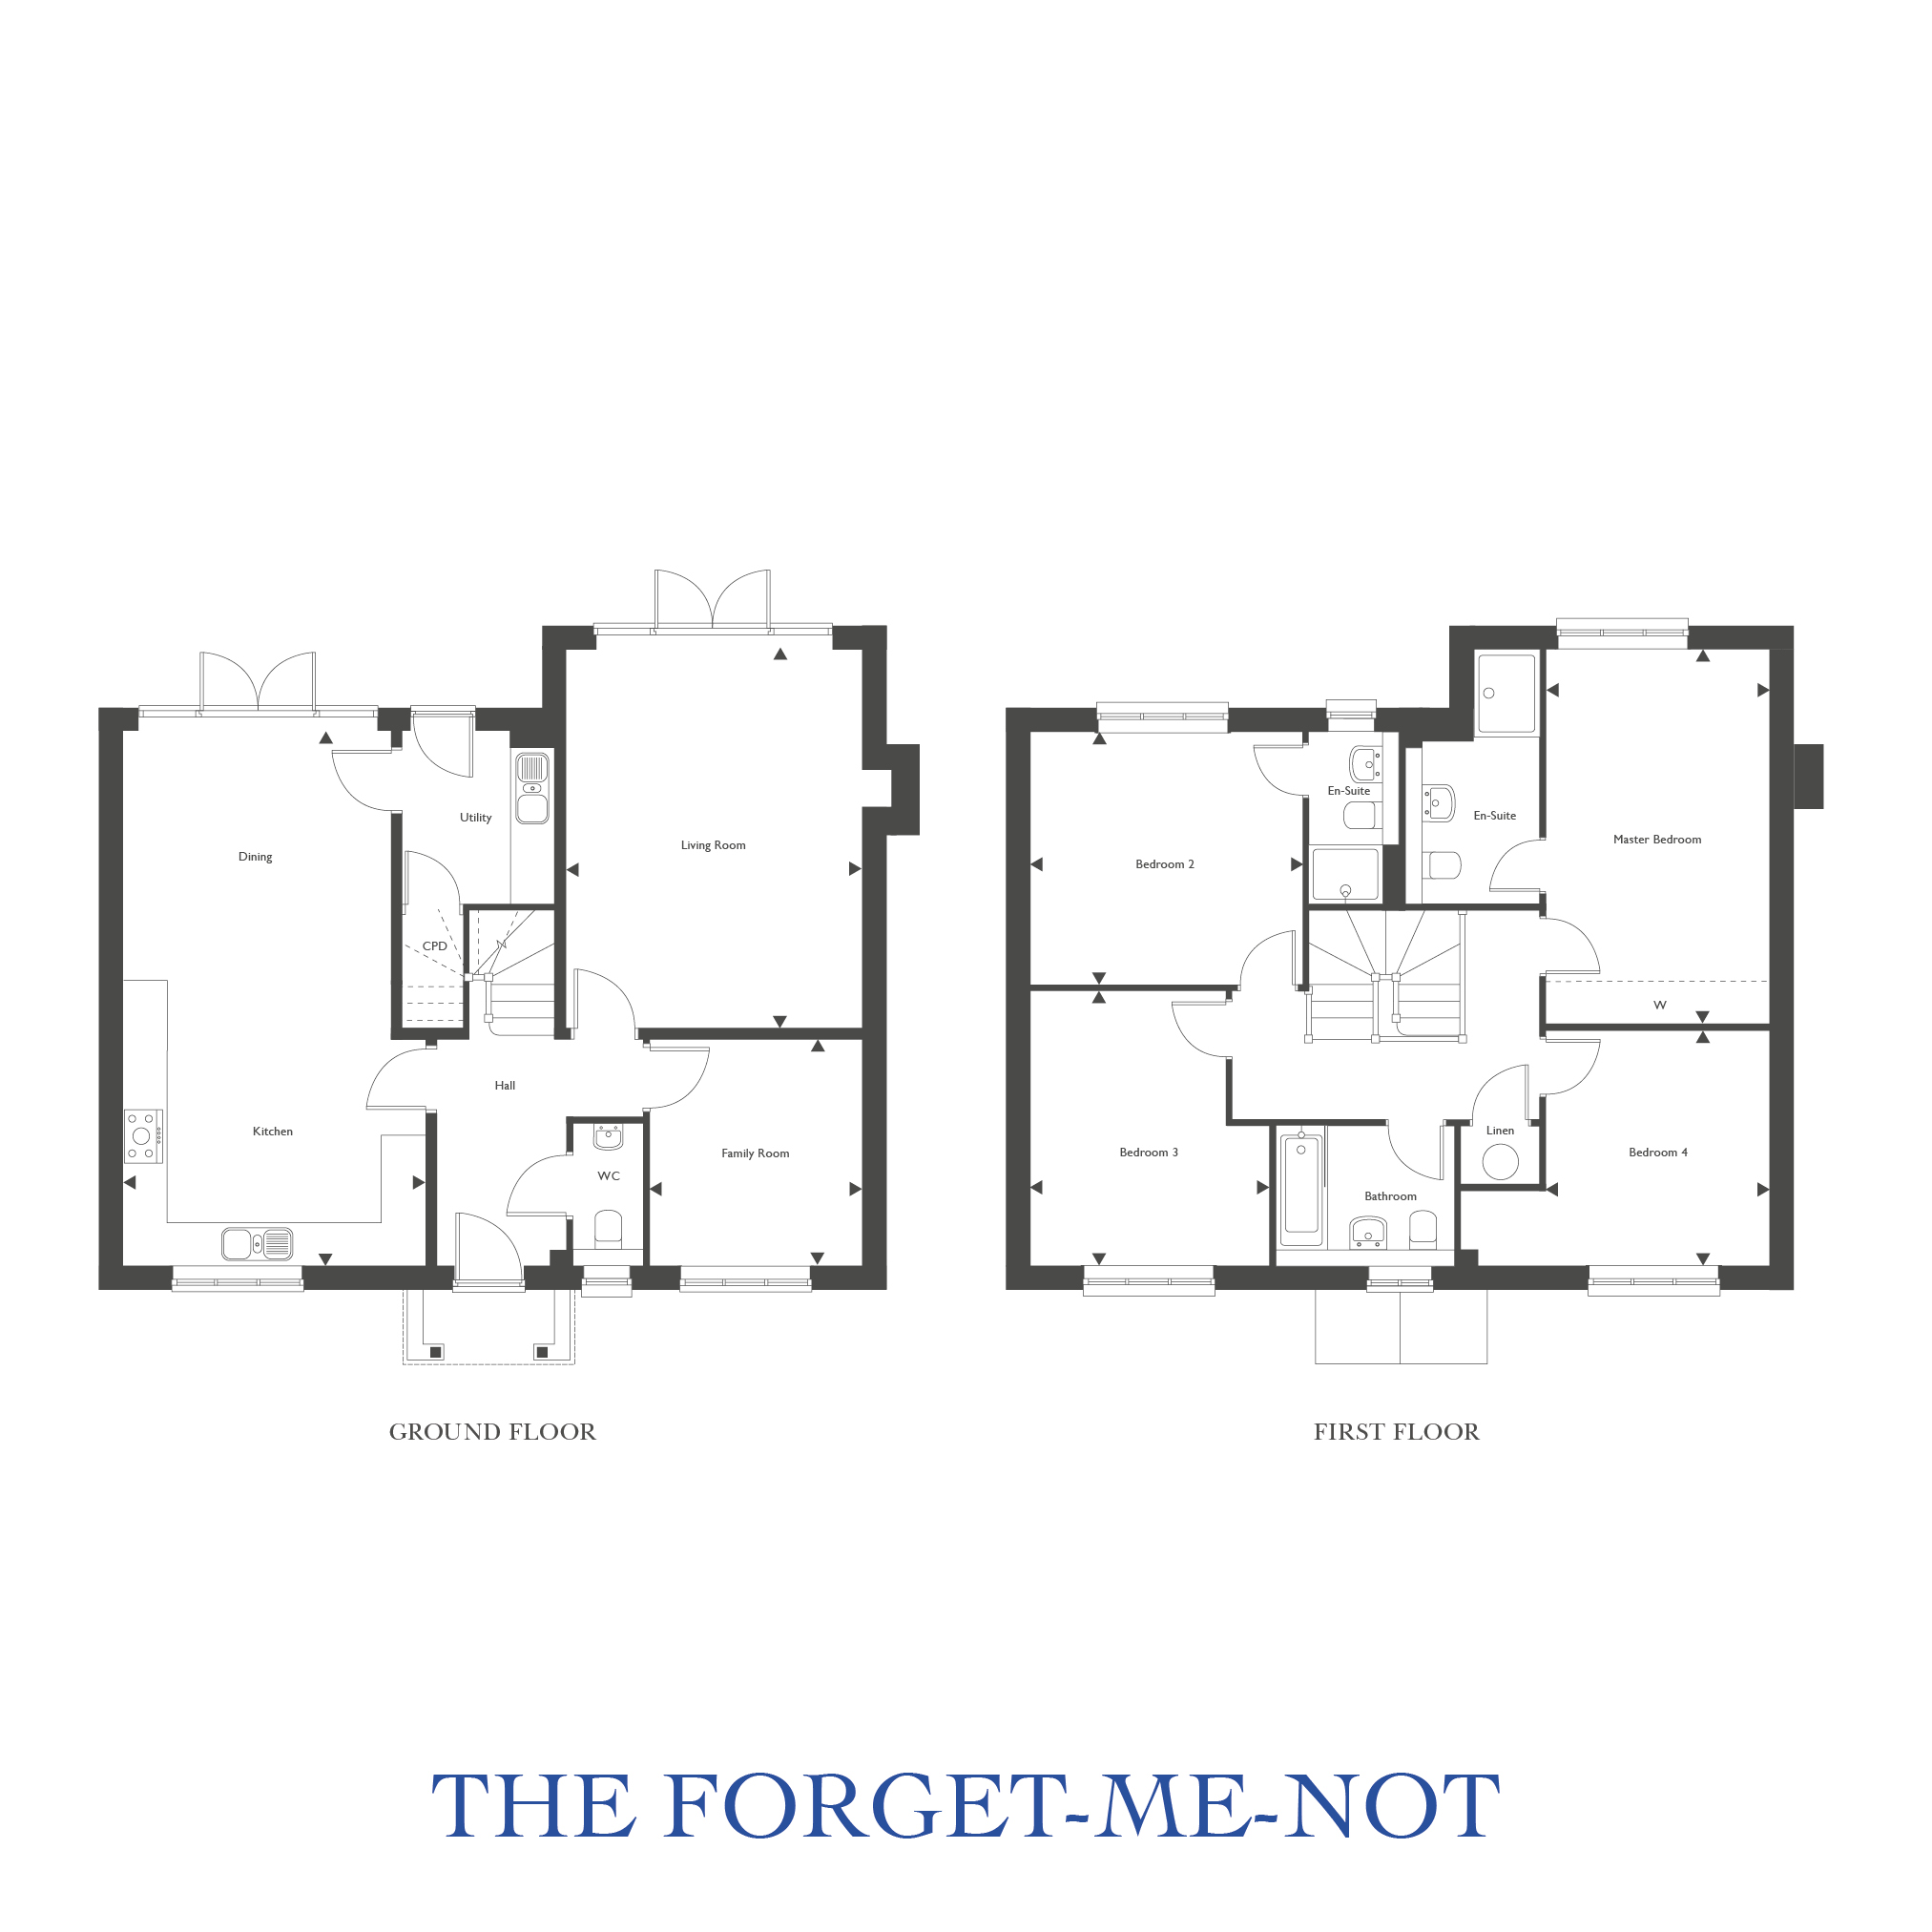 Plot 38 – The Forget-Me-Not Floor plan